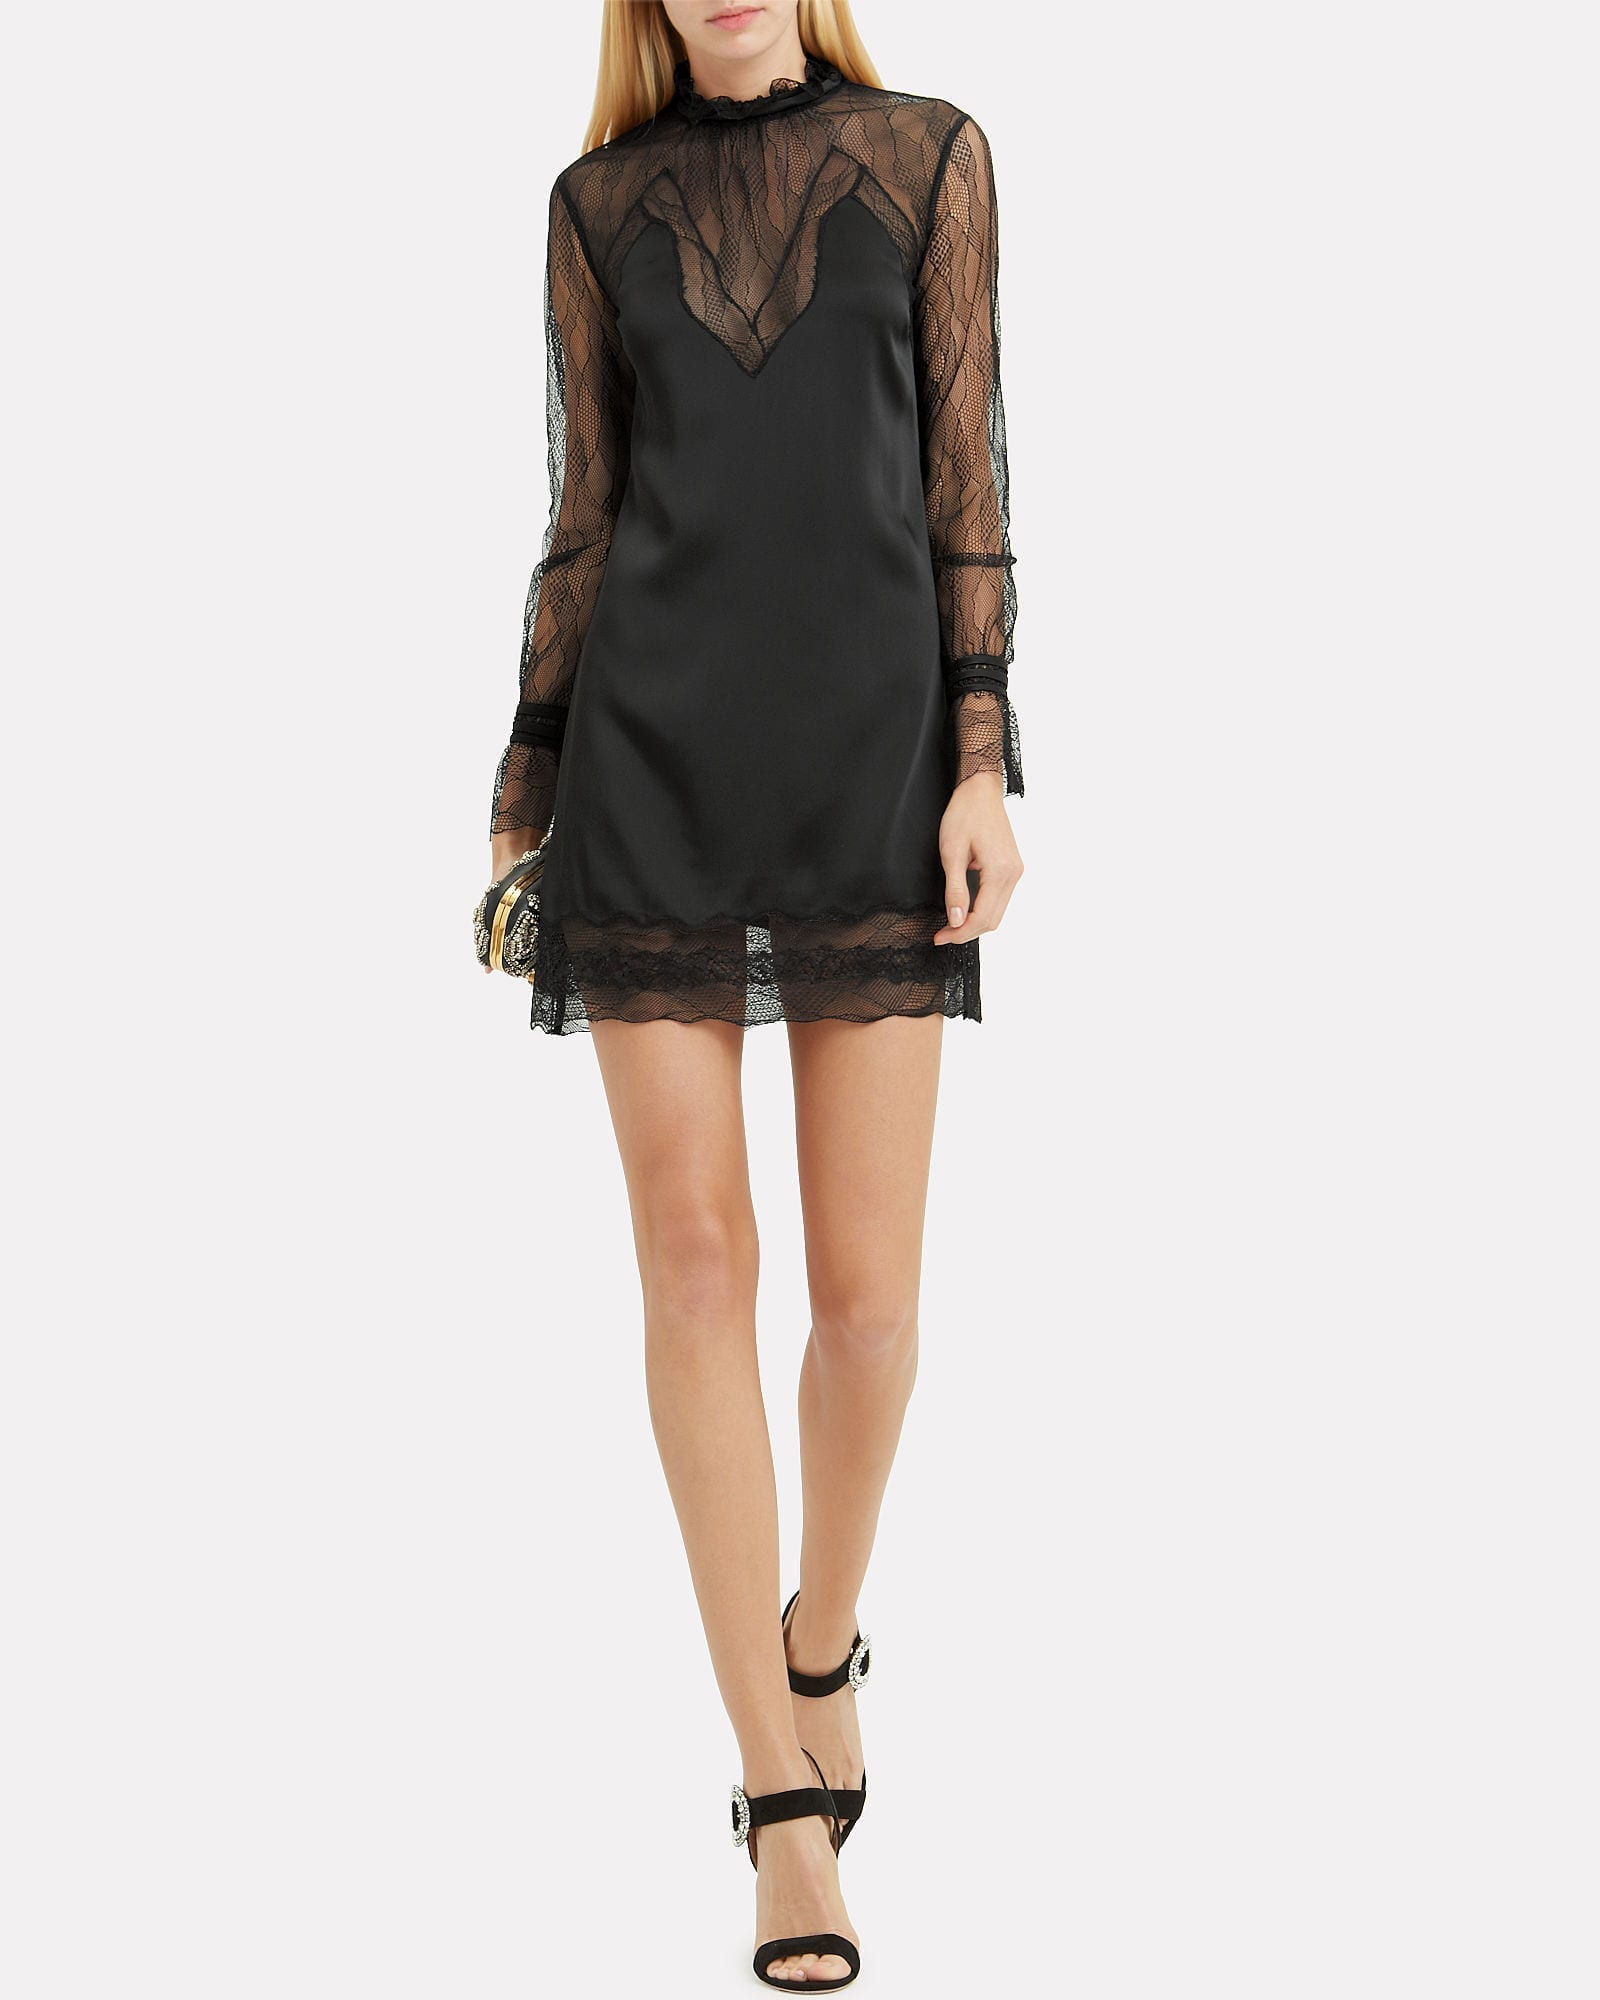 JONATHAN SIMKHAI Lingerie Sateen Mini Black Dress